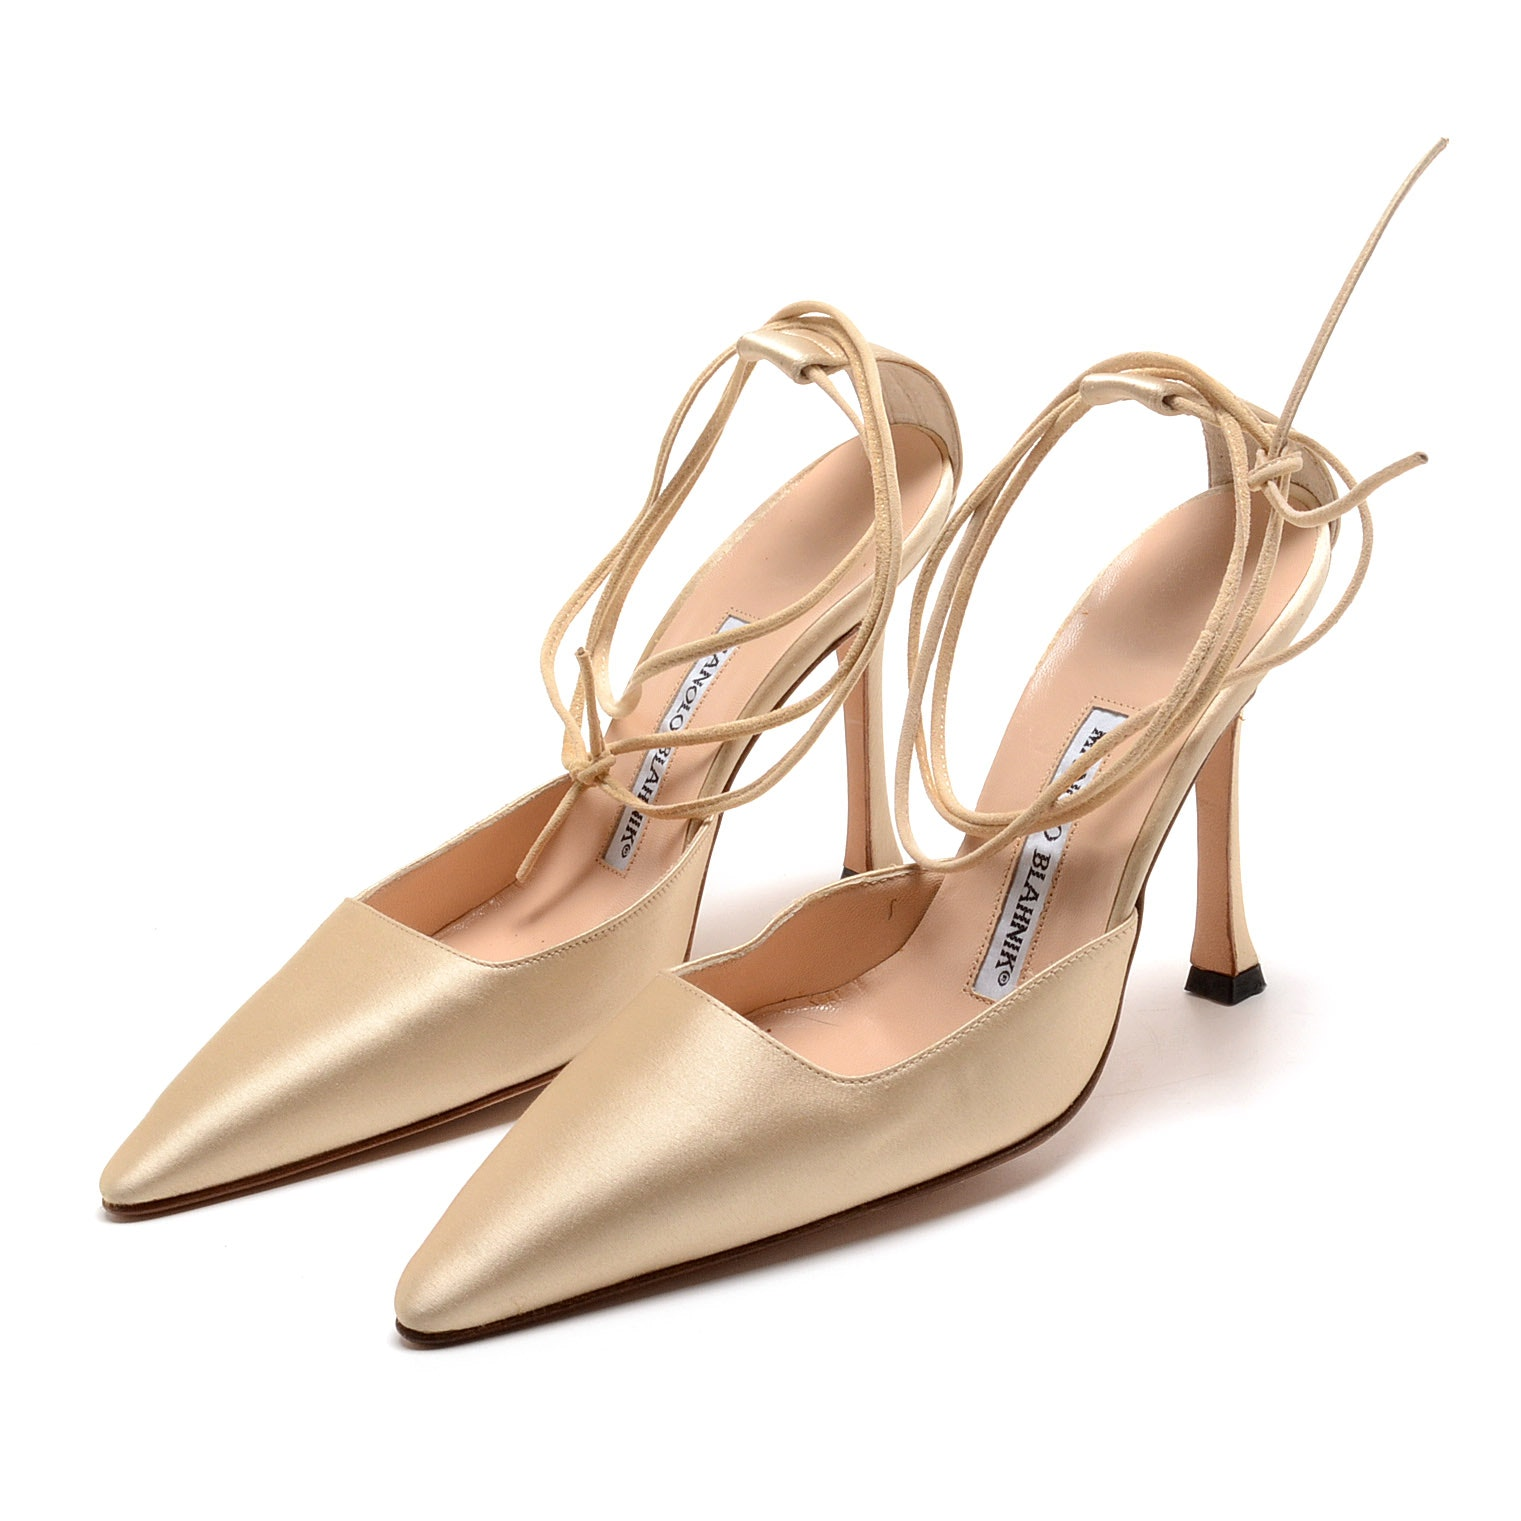 Manolo Blahnik Champagne Silky Satin Leather Ankle Strap Dress Pumps